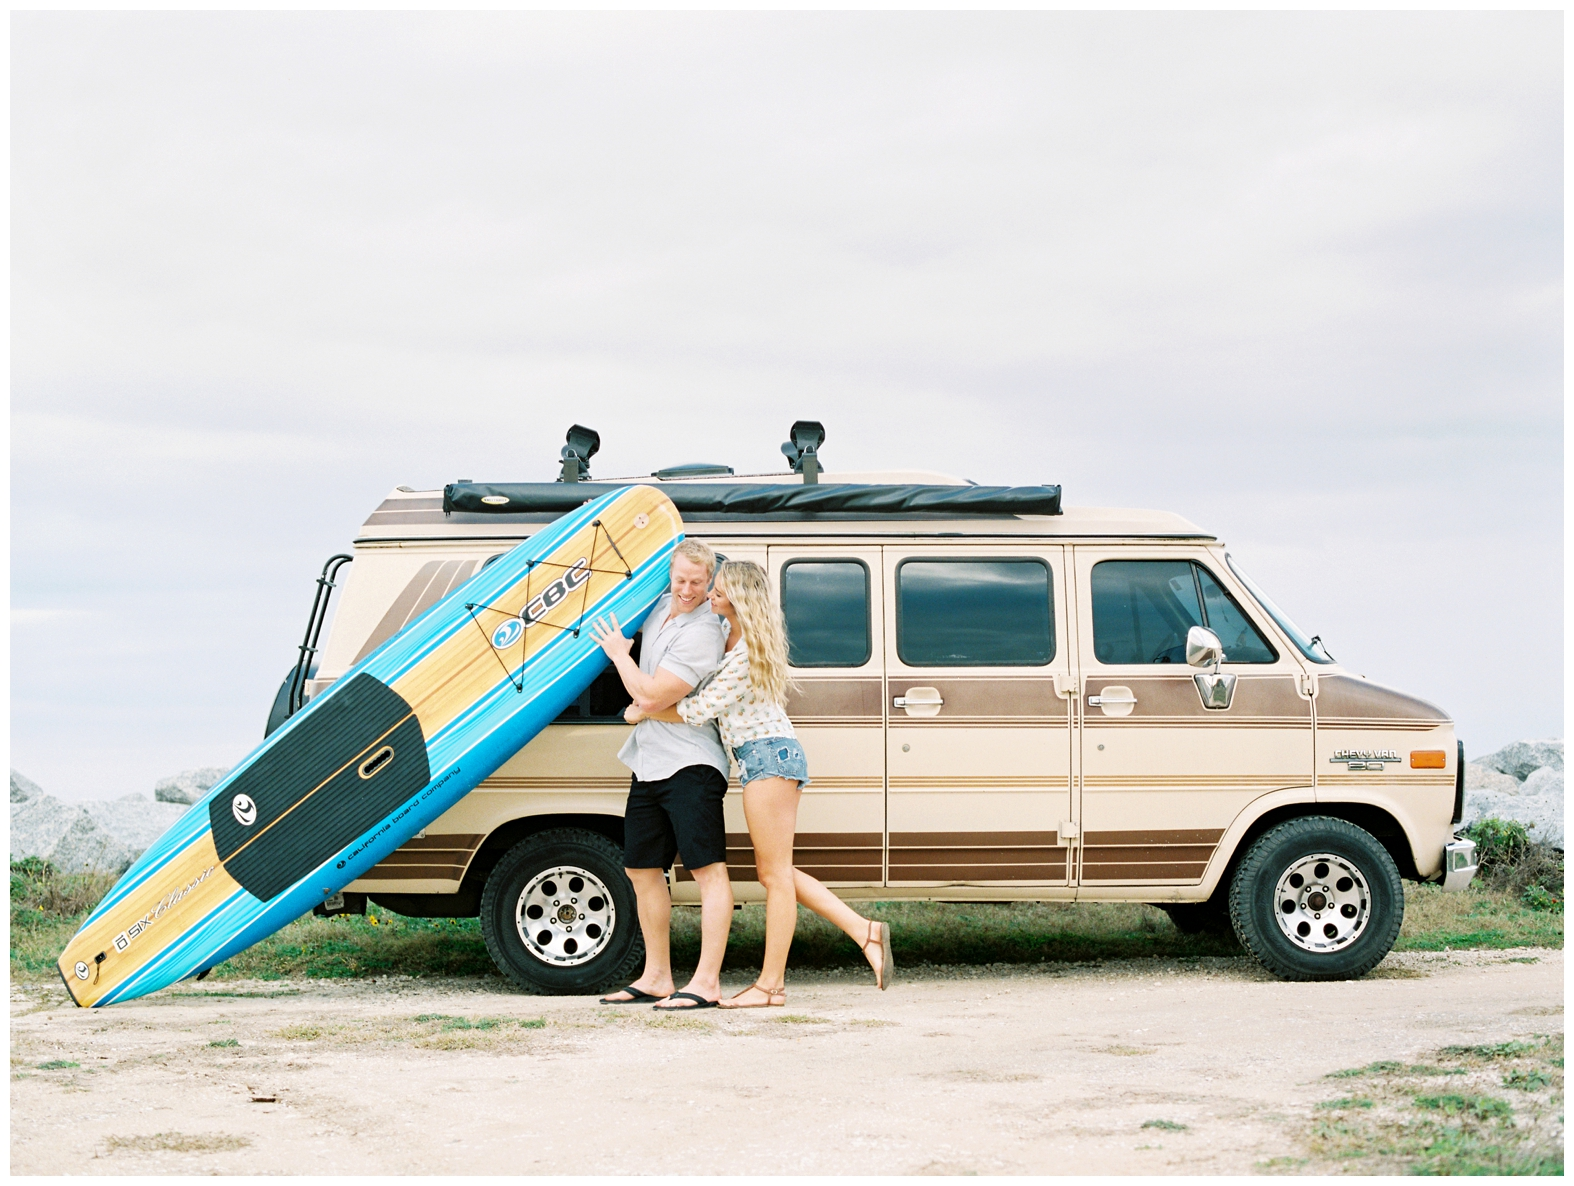 Lisa Silva Photography -Beachy Lifestyle Engagement Session in Palm Coast Florida - Jacksonville Film Photograpgers_0010a.jpg